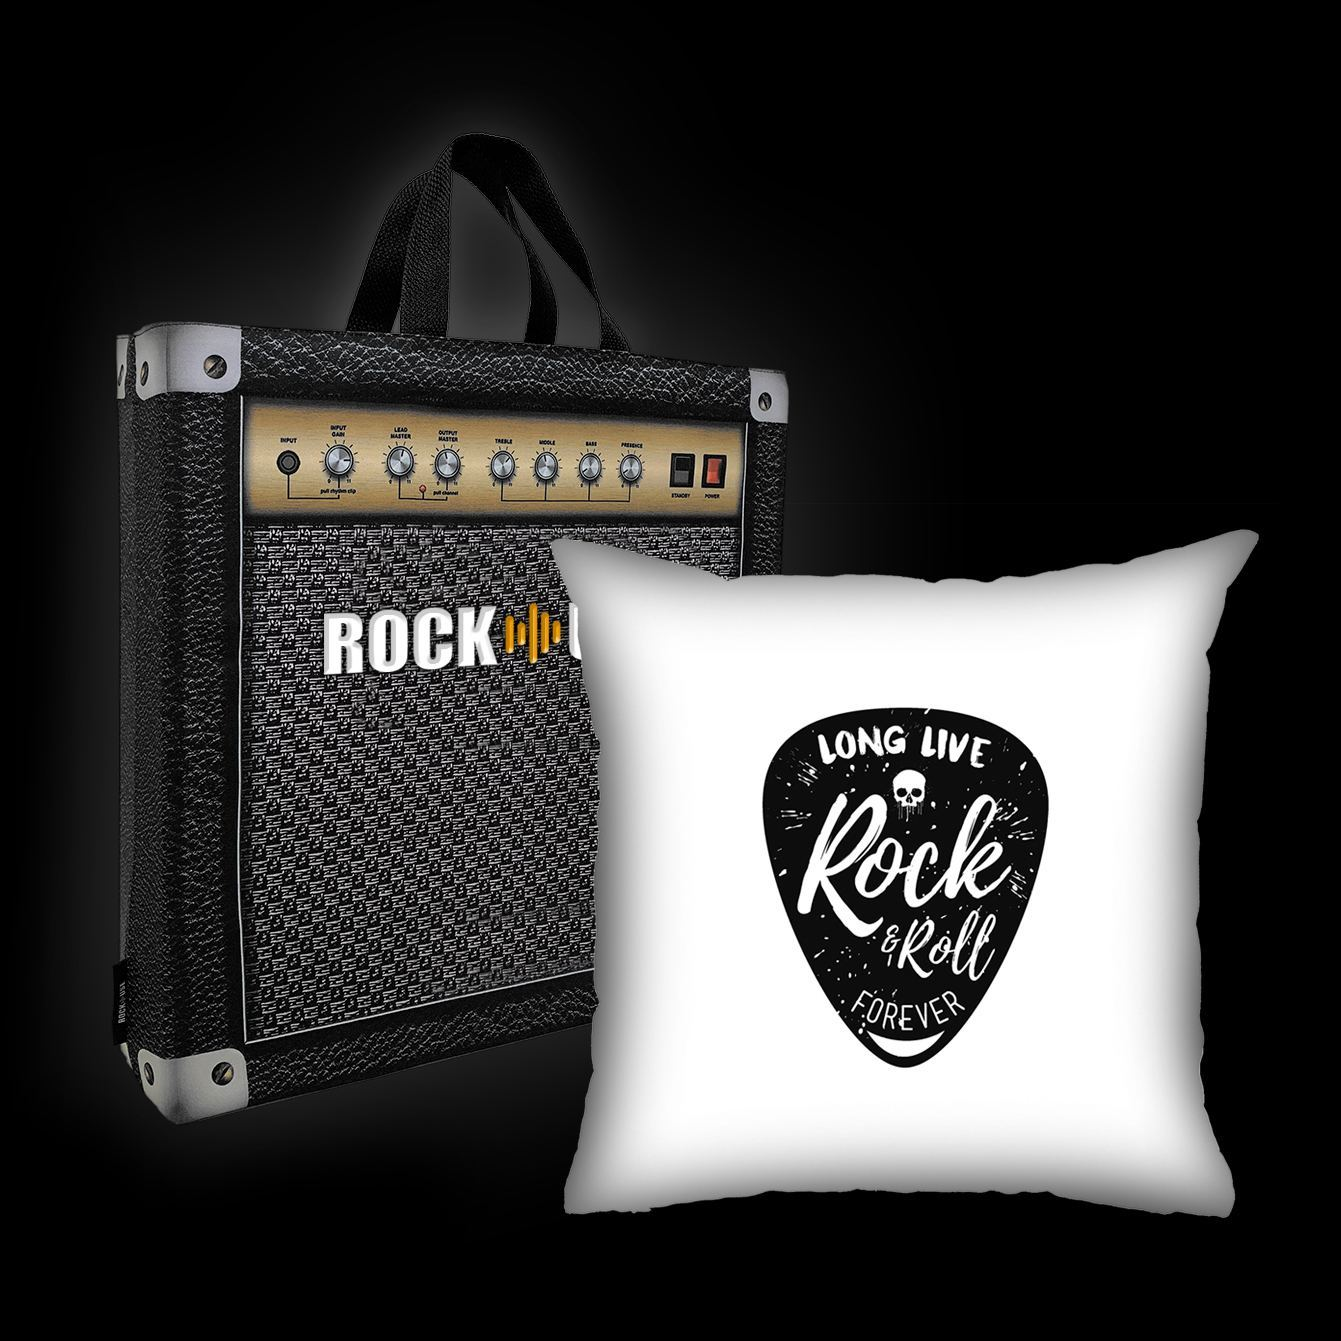 Kit Almofada & Sacola Rock Use - Long Live Rock & Roll - Branca